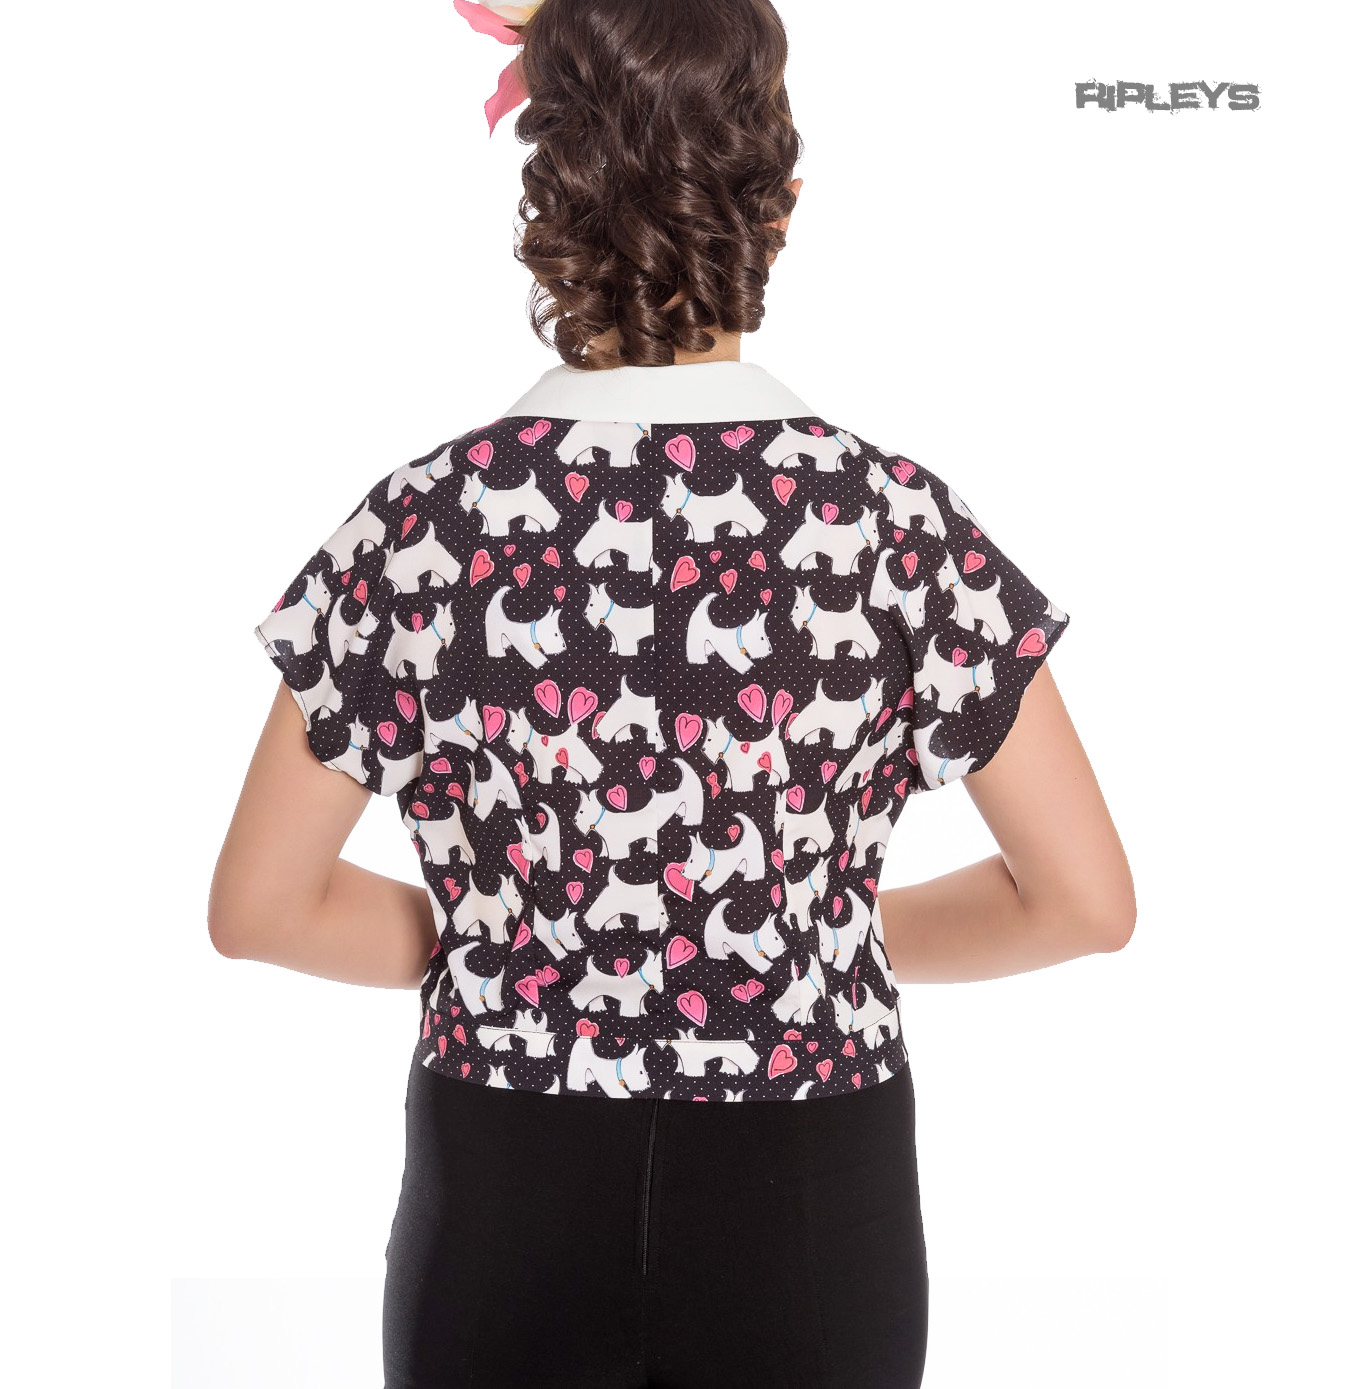 Hell-Bunny-50s-Retro-Top-Scottie-Dog-Heart-AGGY-Cropped-Blouse-Shirt-All-Sizes thumbnail 8